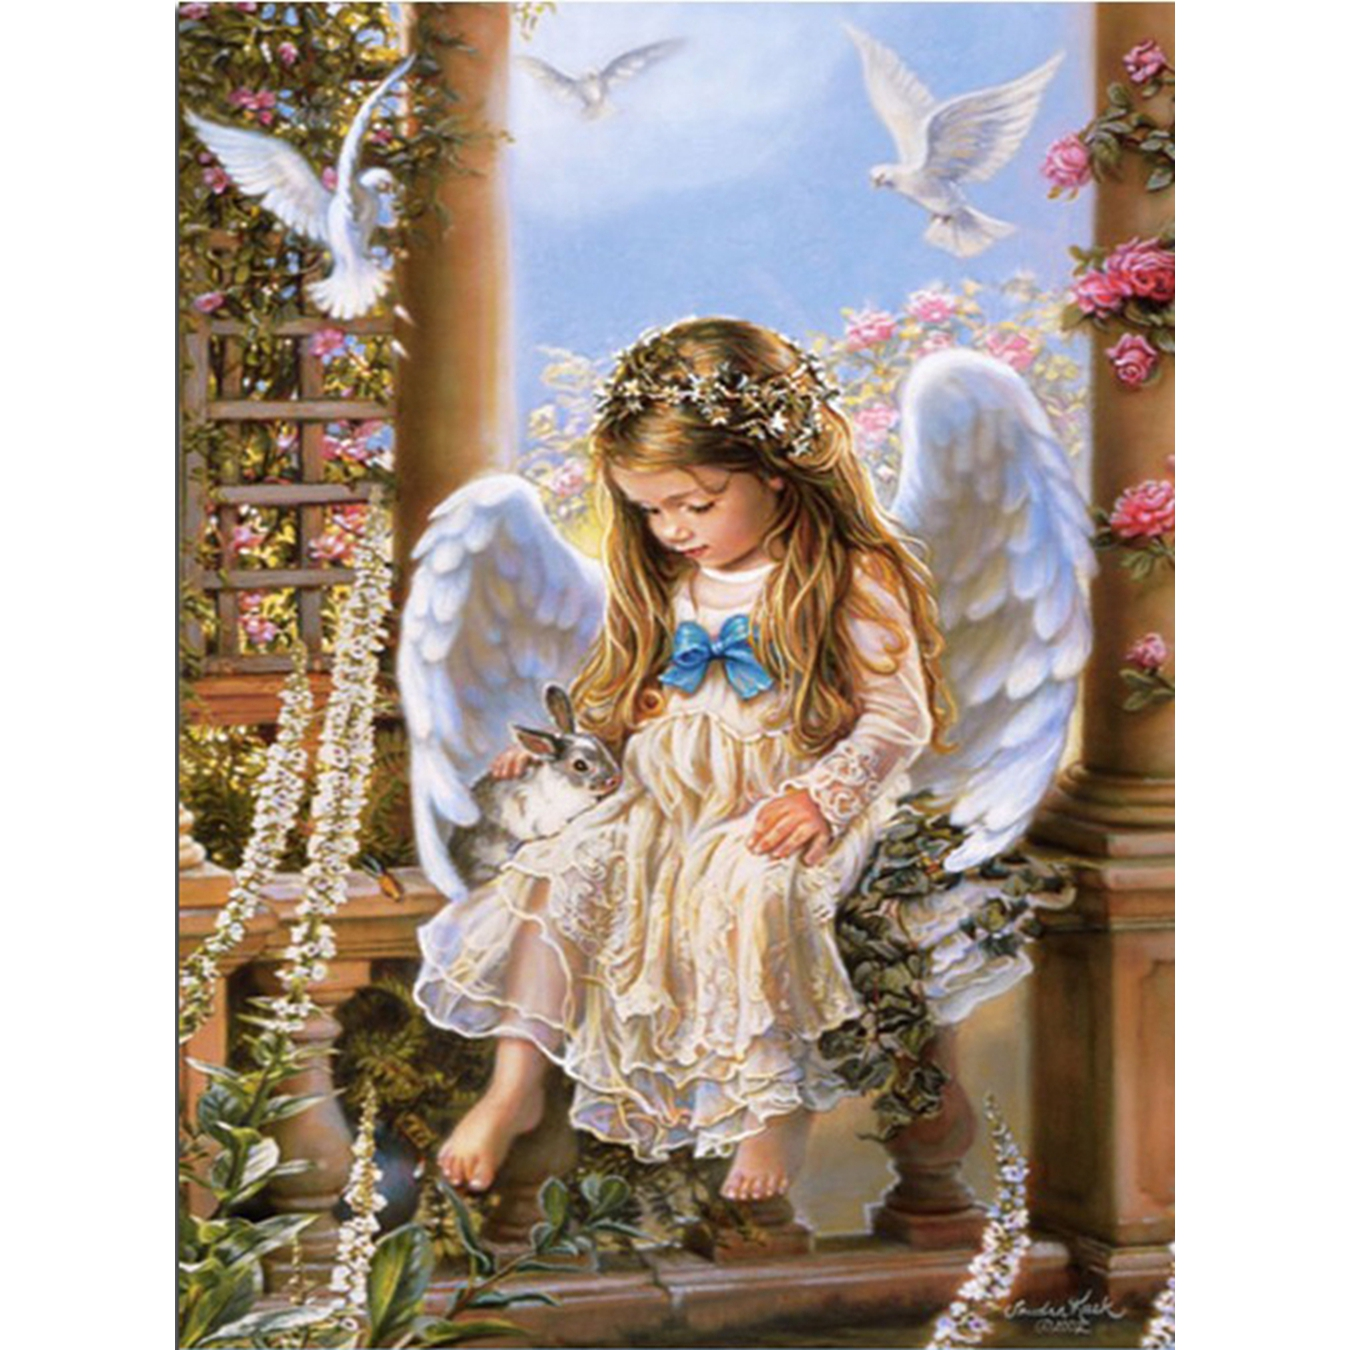 YTG Full Lovely Angel Girl 5D DIY Diamond Painting Needlework Embroidery Cross Stitch Round Rhinestone Room Decor Crafts